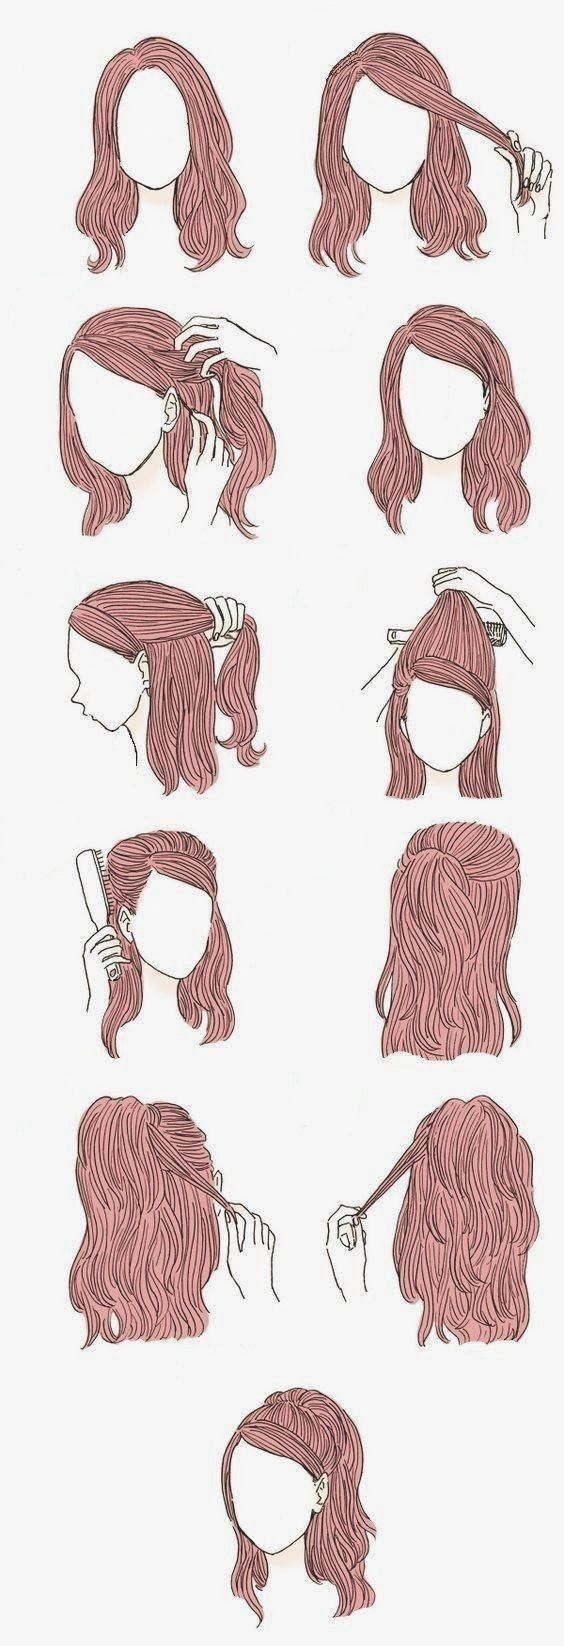 #hairstyle ideas at home #new hairstyle ideas 2019 #hairstyle ideas video #hair styles updo ideas #hairstyle ideas photo upload #short hairstyle ideas pinterest #hairstyle ideas for twa #hairstyle ideas for thin hair